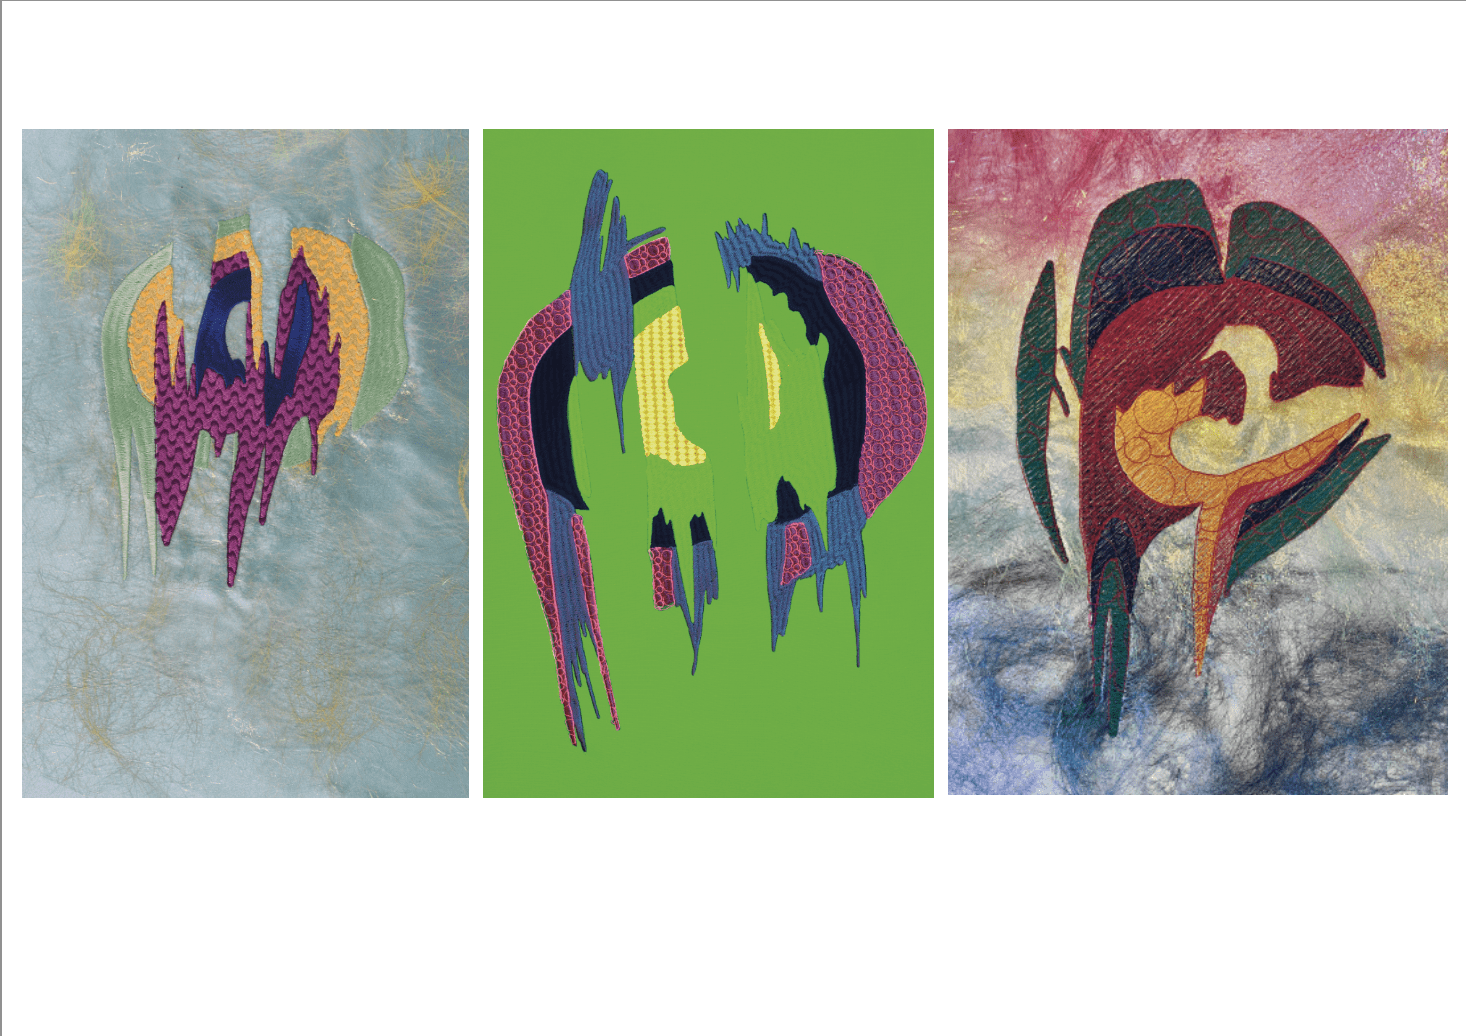 bold, abstract digital embroidery designs